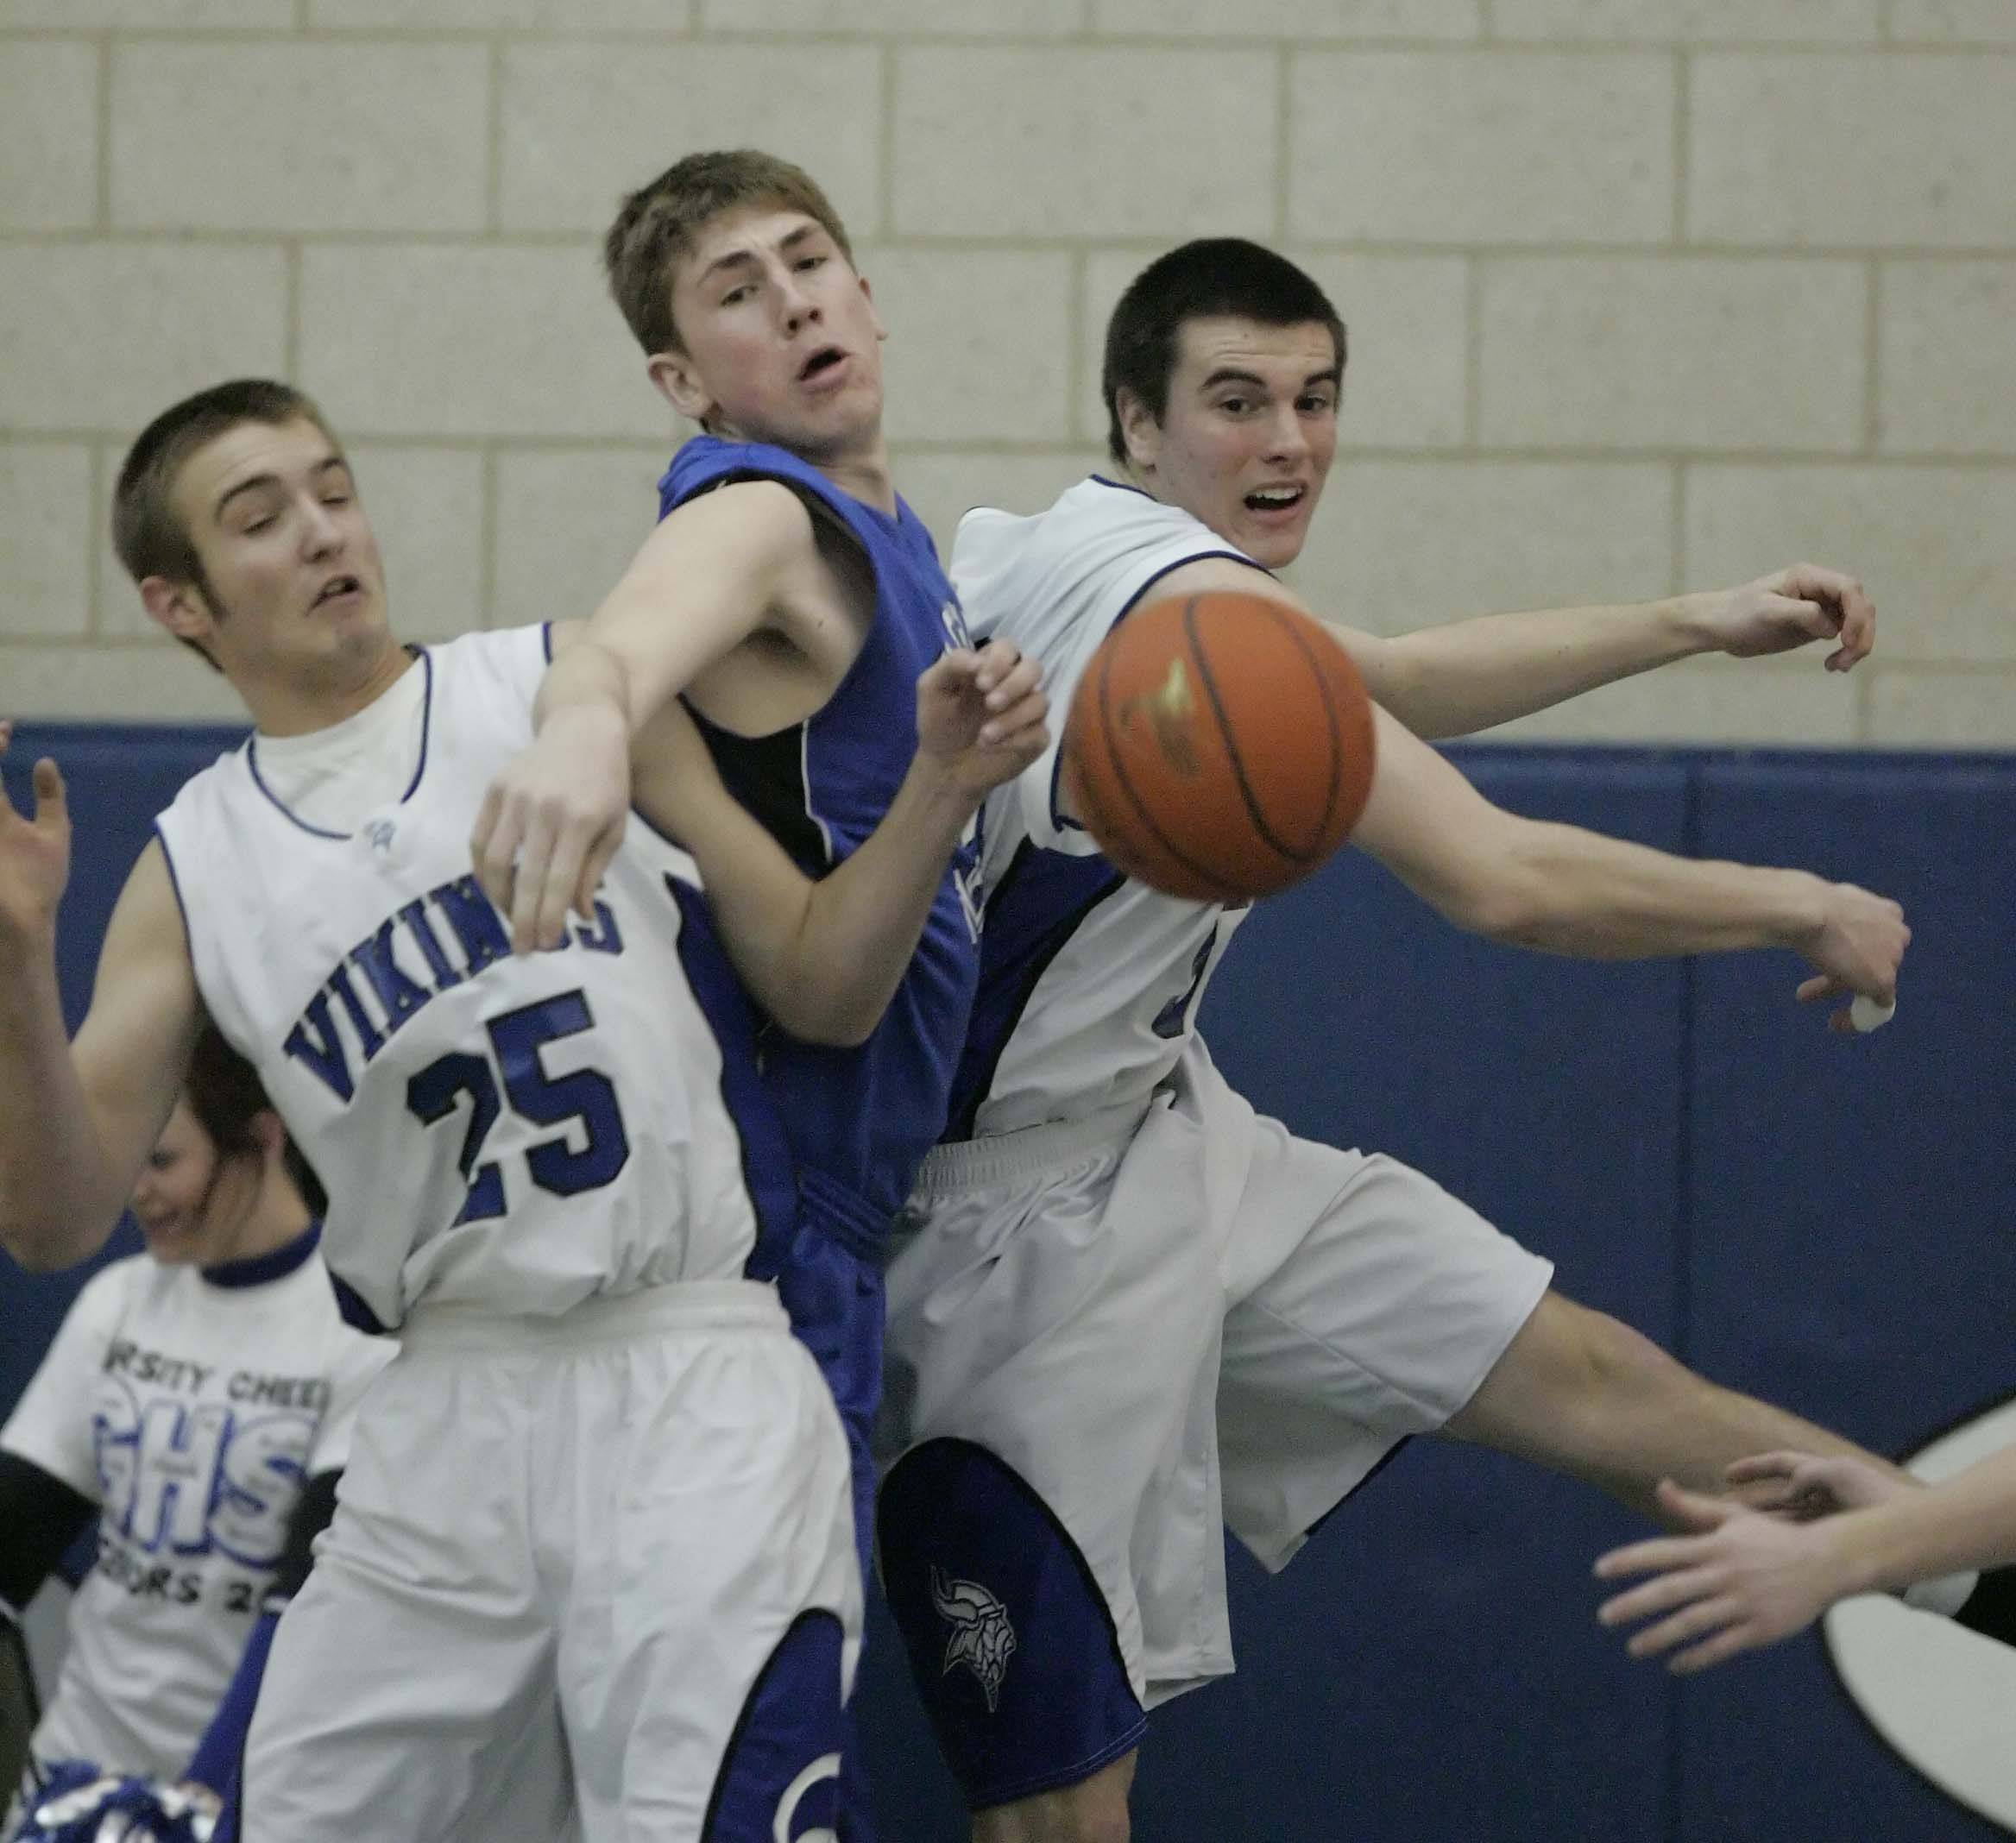 Geneva's Dan Trimble, 25, and Brad Bernhard, 50, pressure St. Charles North's Kyle Nelson during Friday's game.